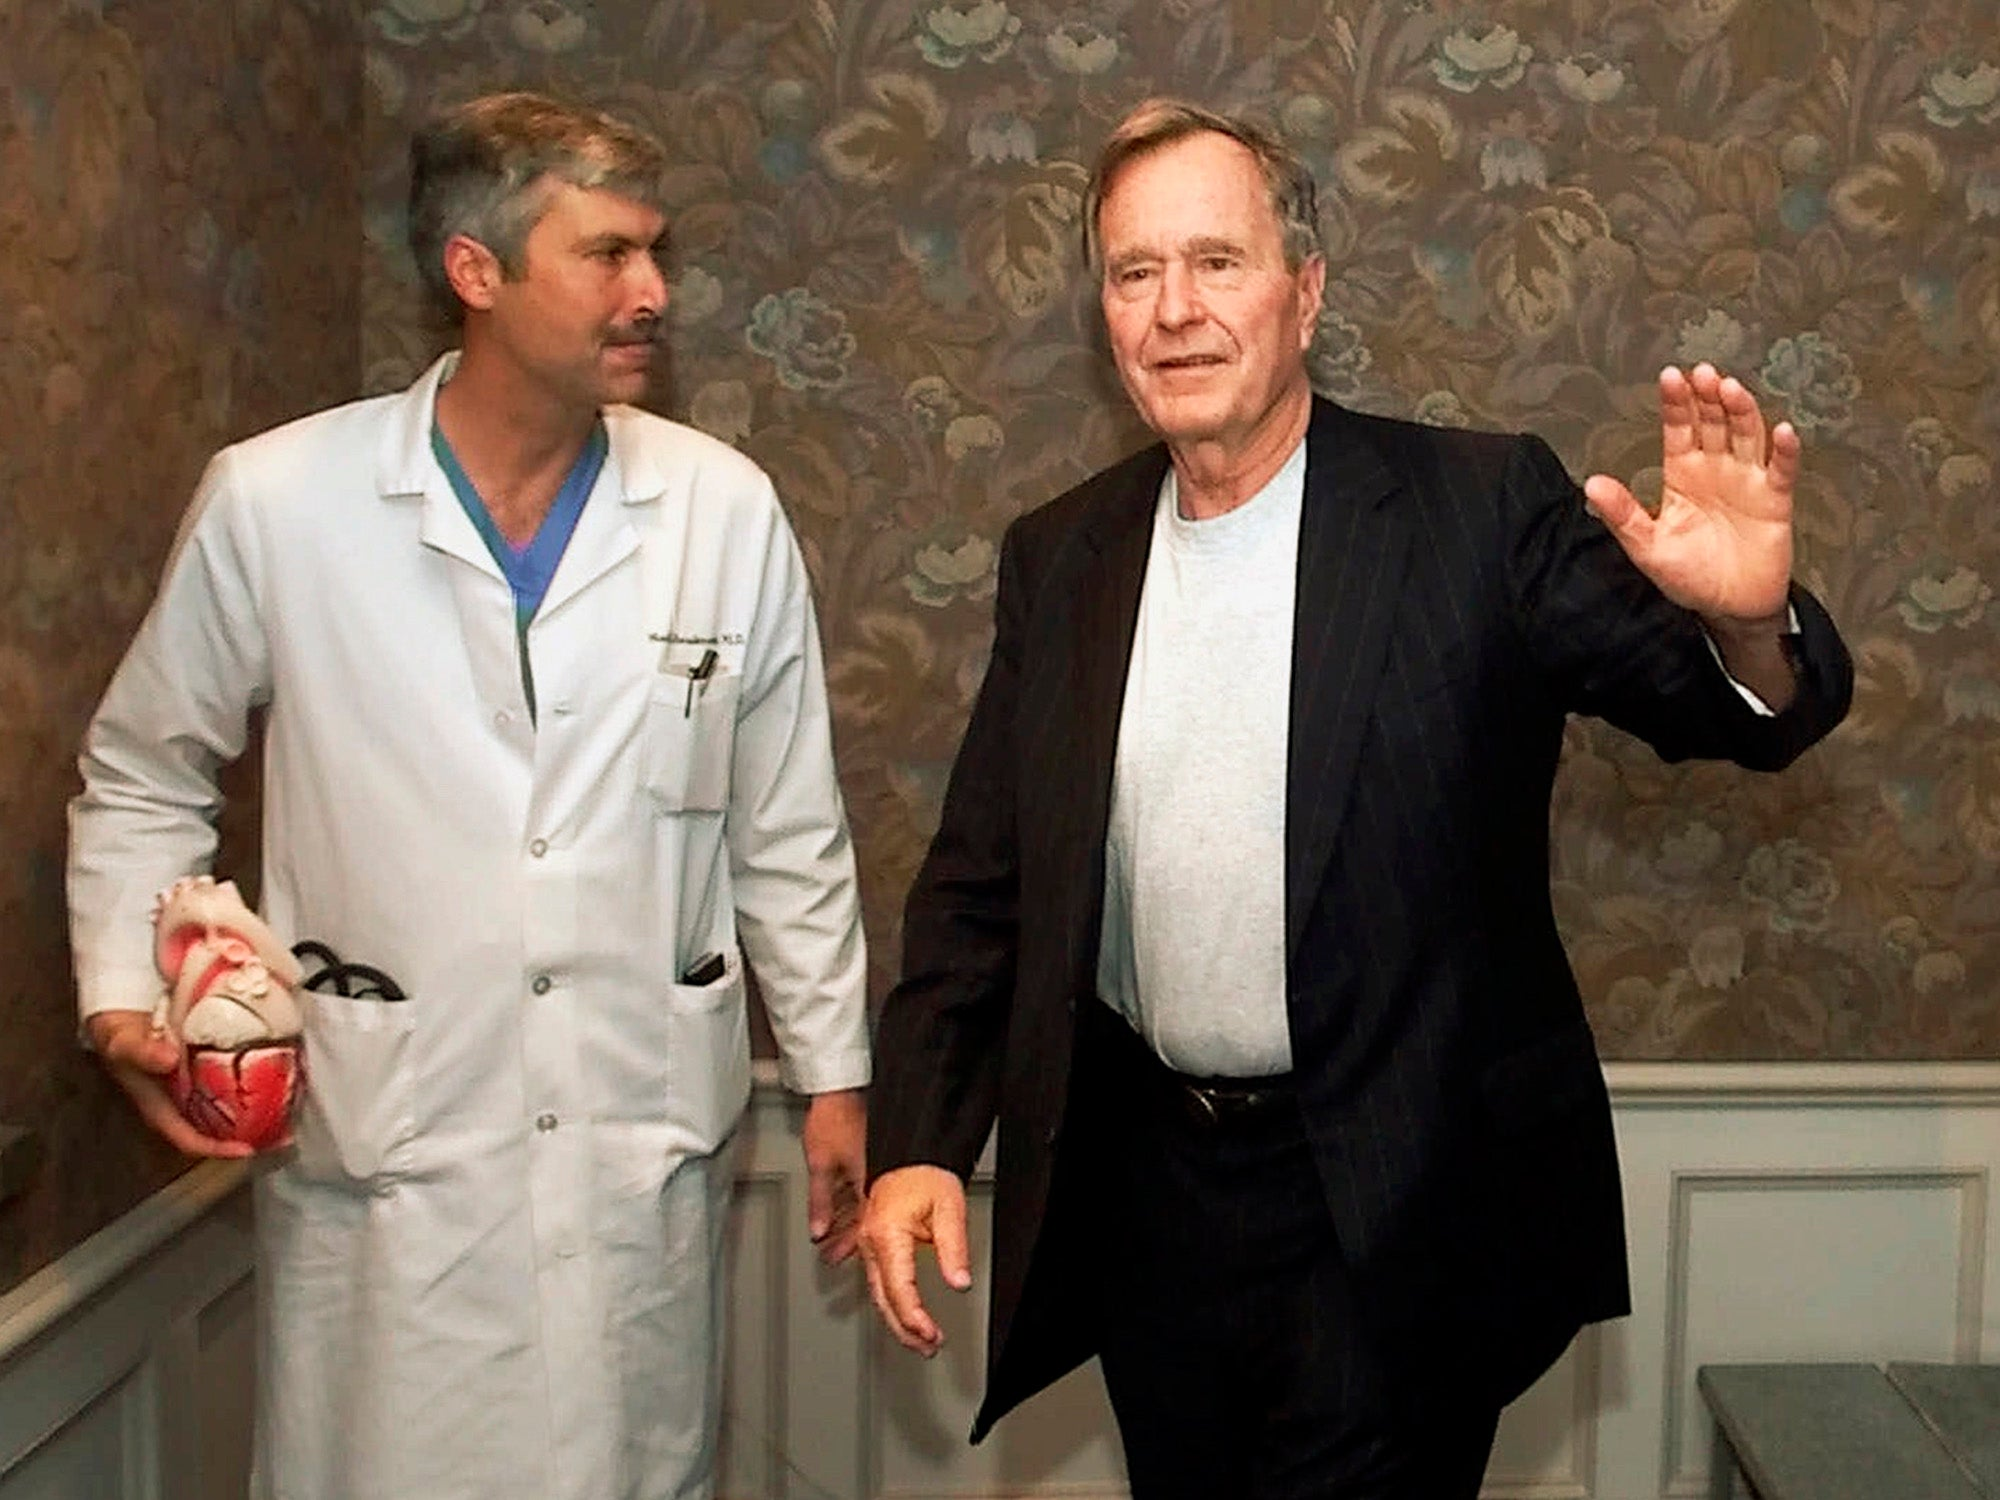 Man accused of killing George W Bush's cardiologist may have been seeking revenge, police say